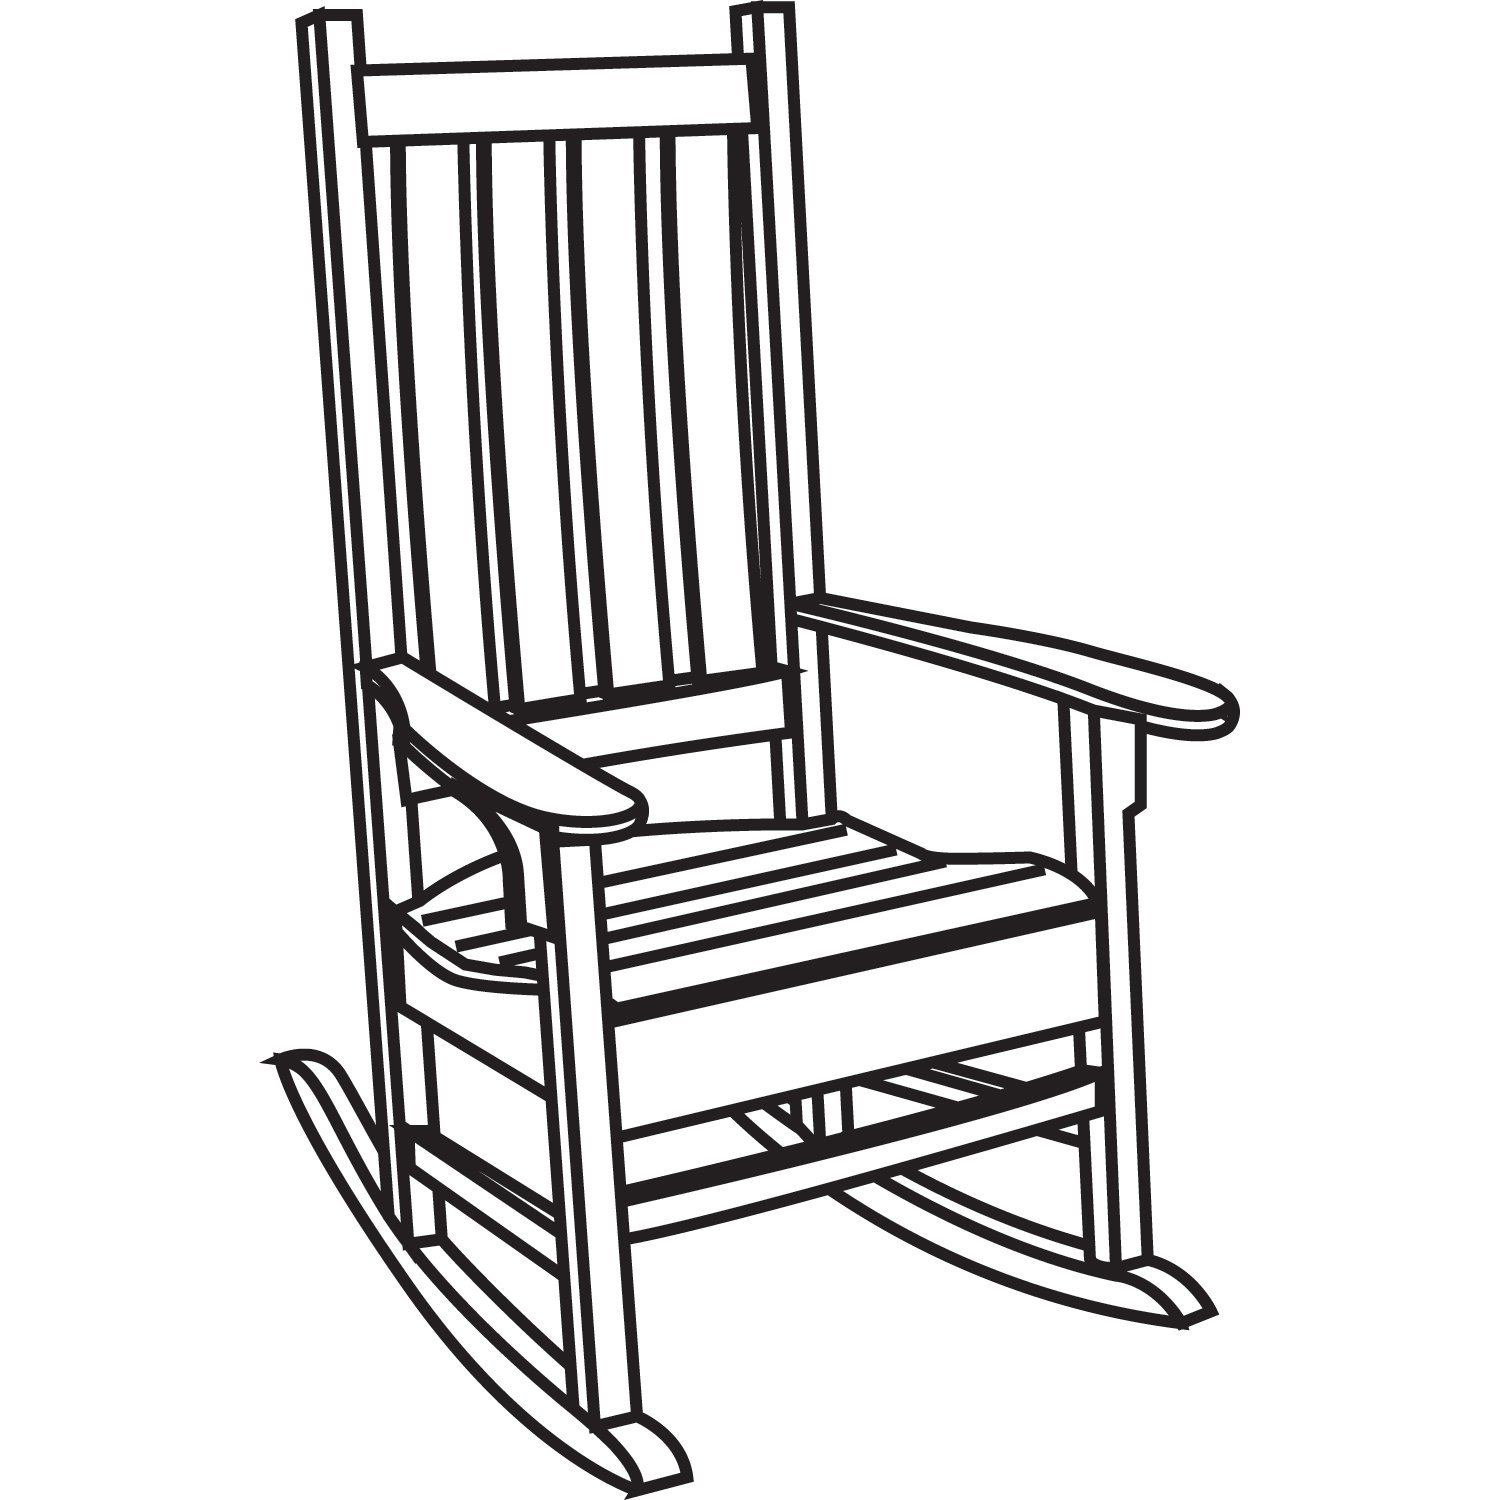 Free Lawnchair Cliparts Download Free Clip Art Free Clip